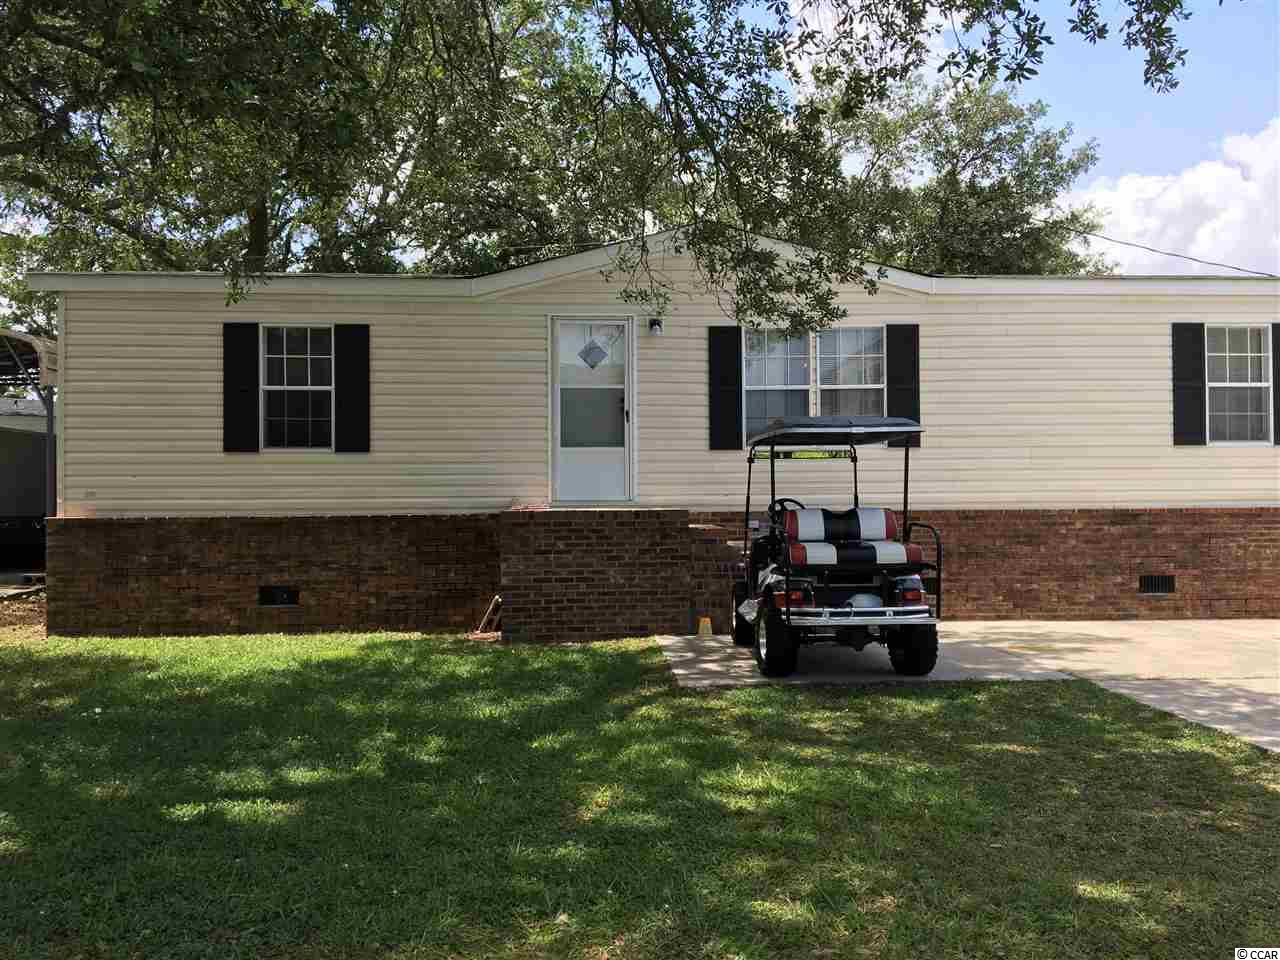 3 bedroom and 2 full bath on leased land with furniture, kitchen appliances, and washer dryer to convey. Carpet and linoleum. Home is on raised brick foundation with cement pad out front for parking. Home is close to the beach on third block off of Woodland Avenue. New roof 2018. Come and enjoy what Garden City has to offer.